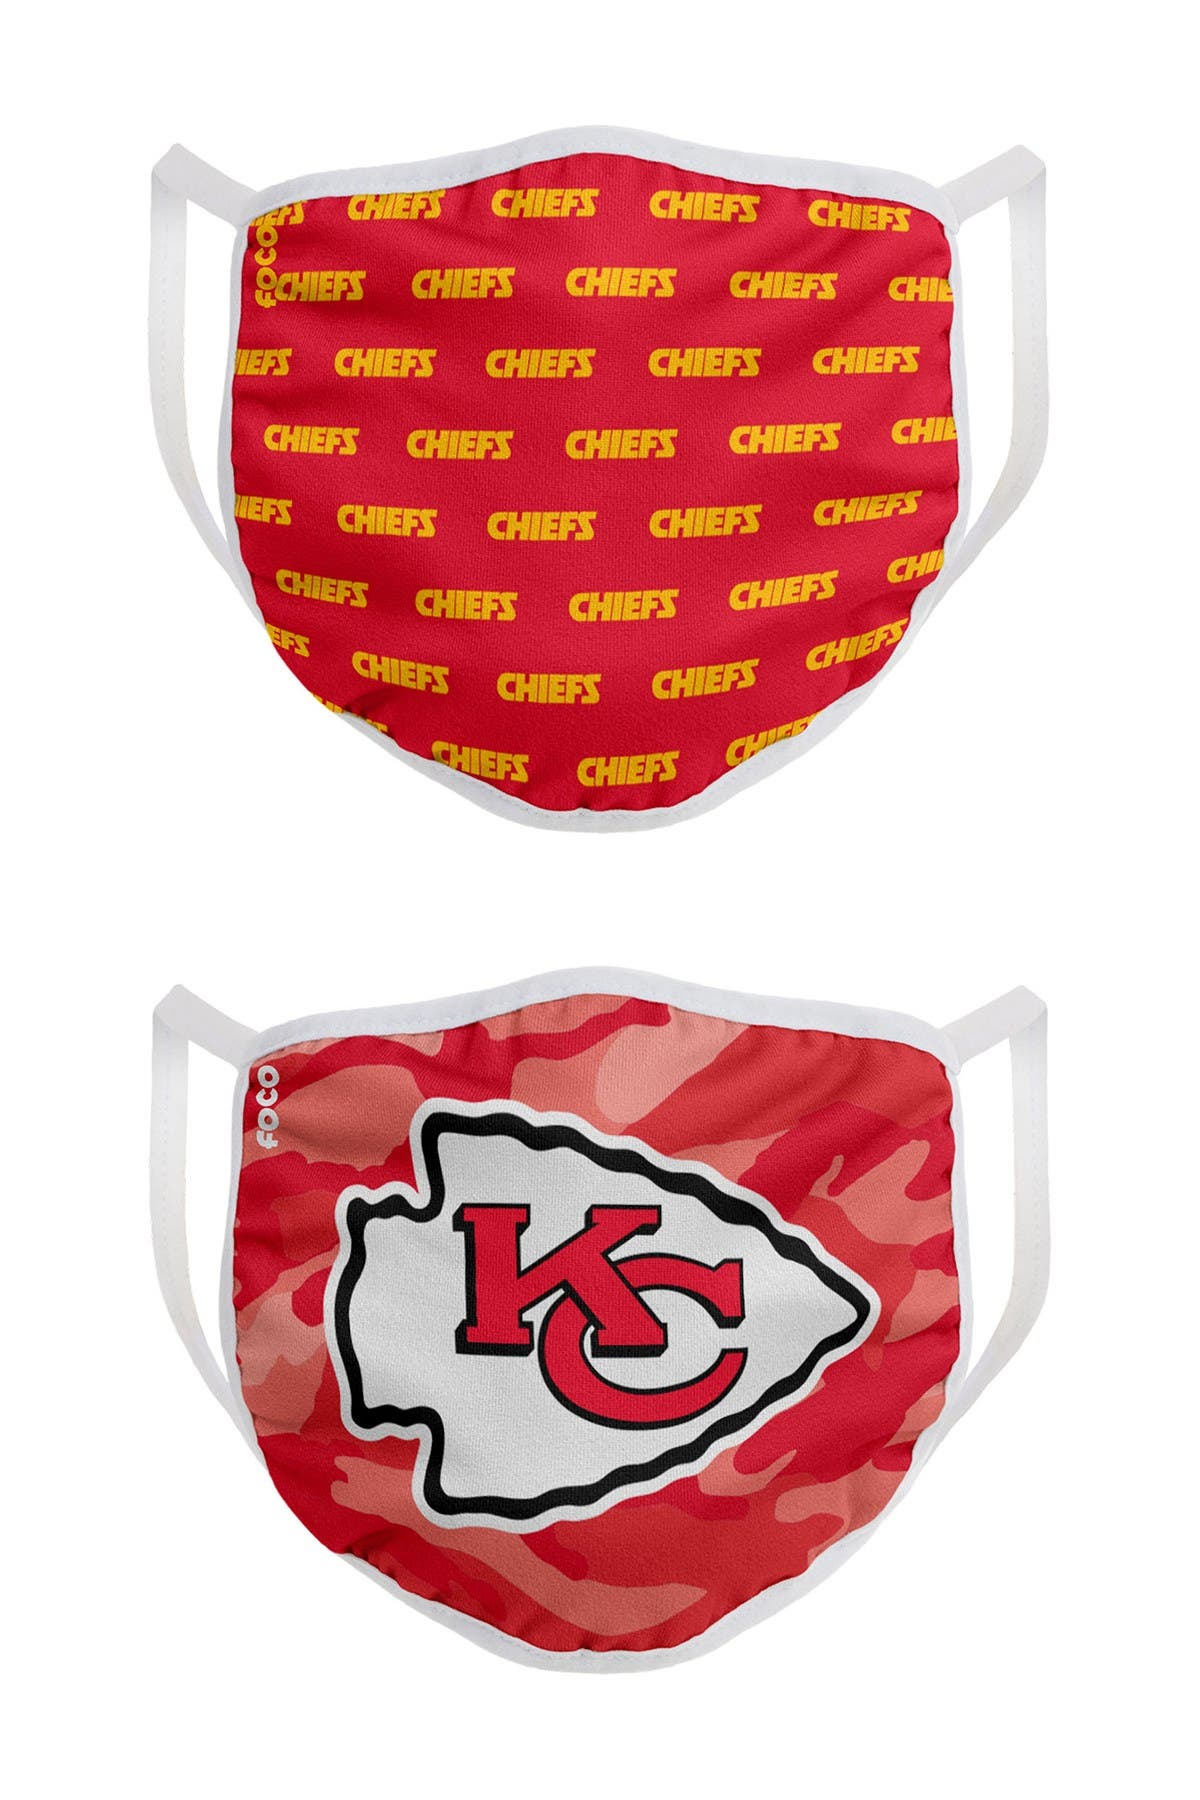 Image of FOCO NFL Kansas City Chiefs Clutch Printed Face Cover - Pack of 2